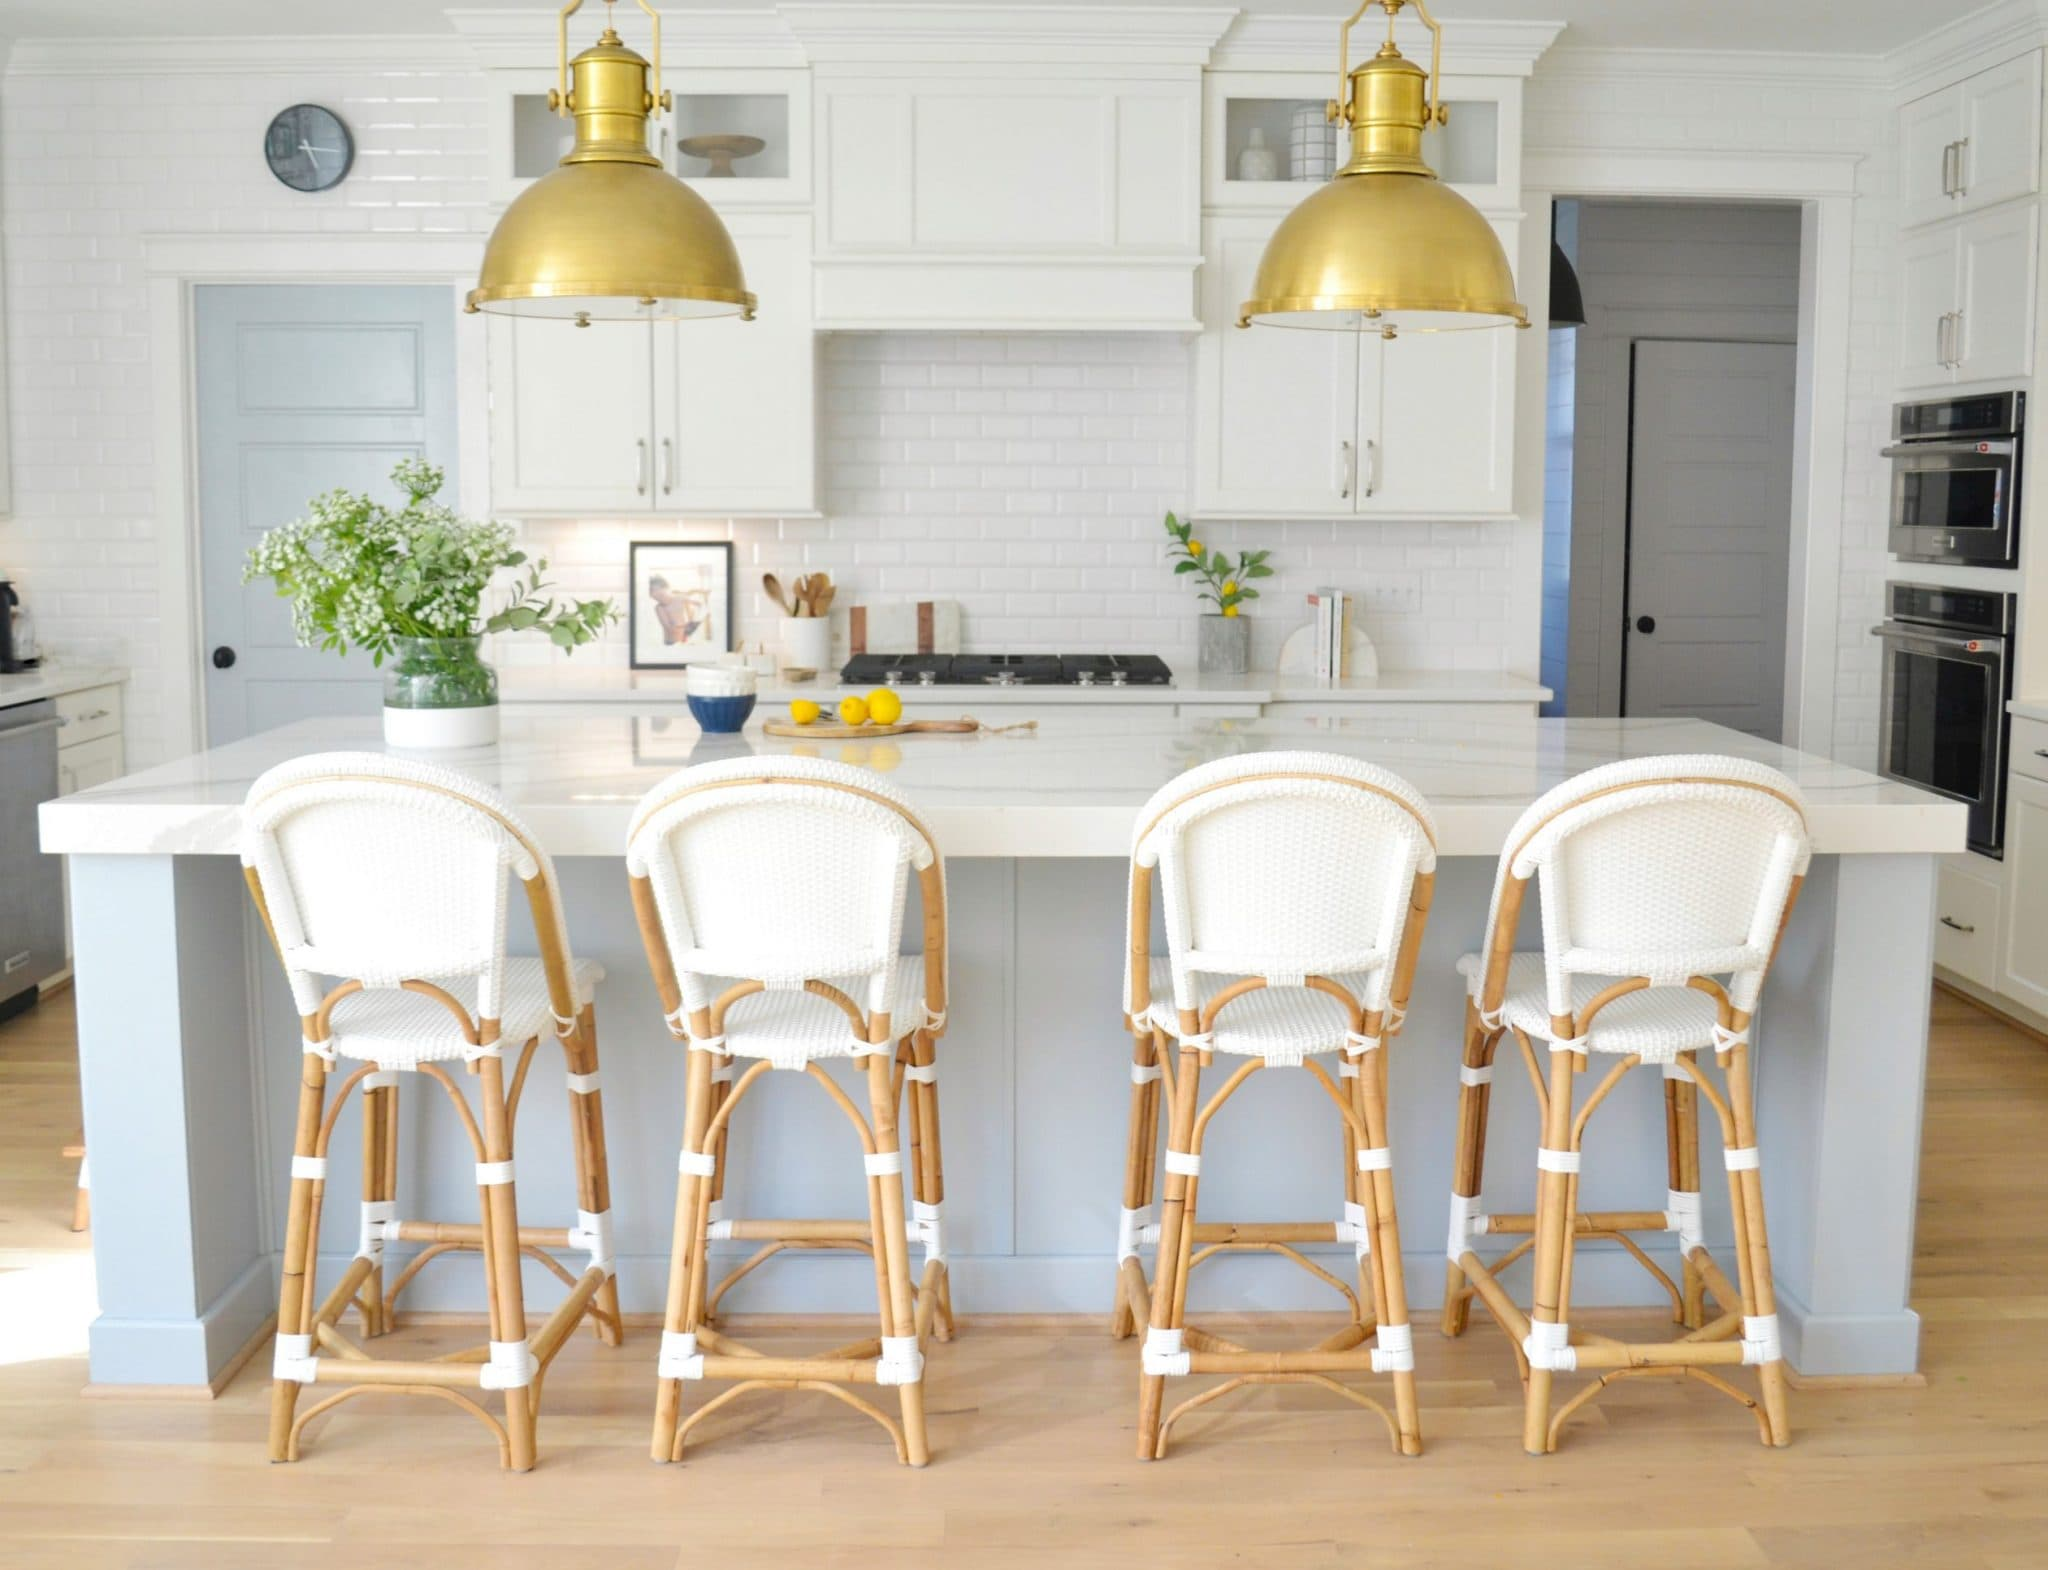 Sherwin Williams Krypton is the perfect light blue gray color for a kitchen island and pantry door